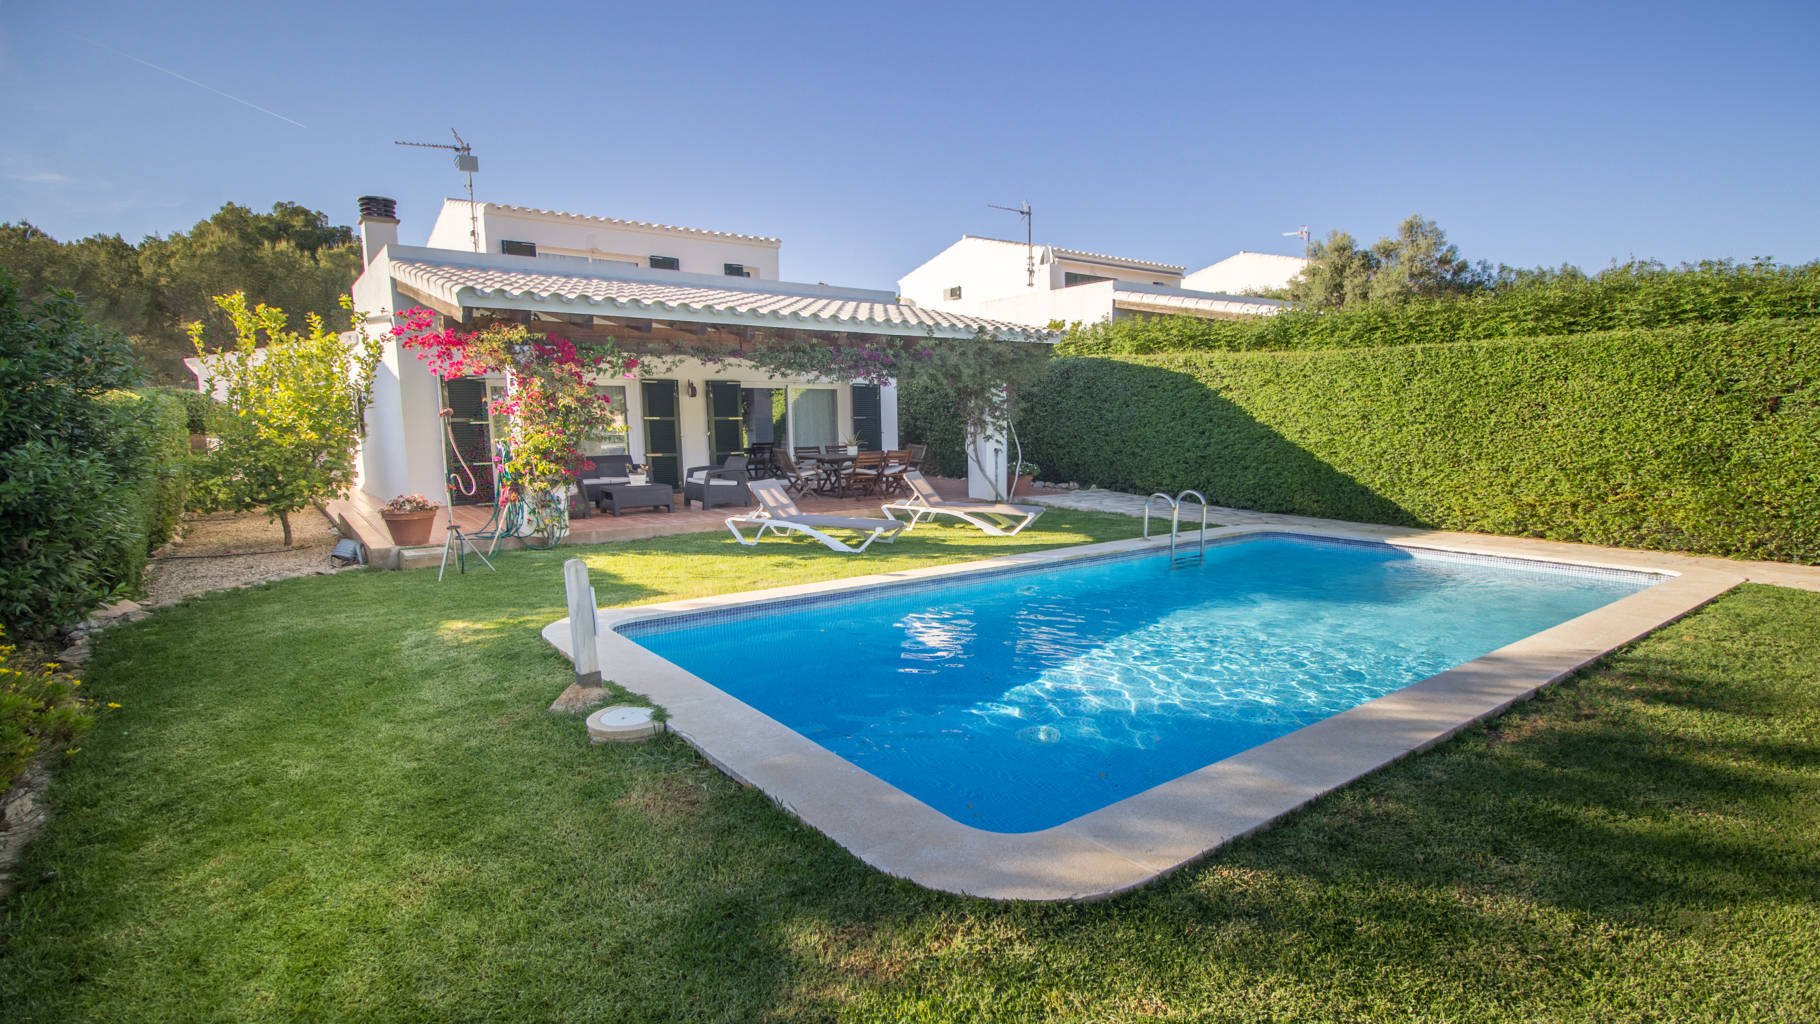 Villa for sale with swimming pool and garden in Biniancolla